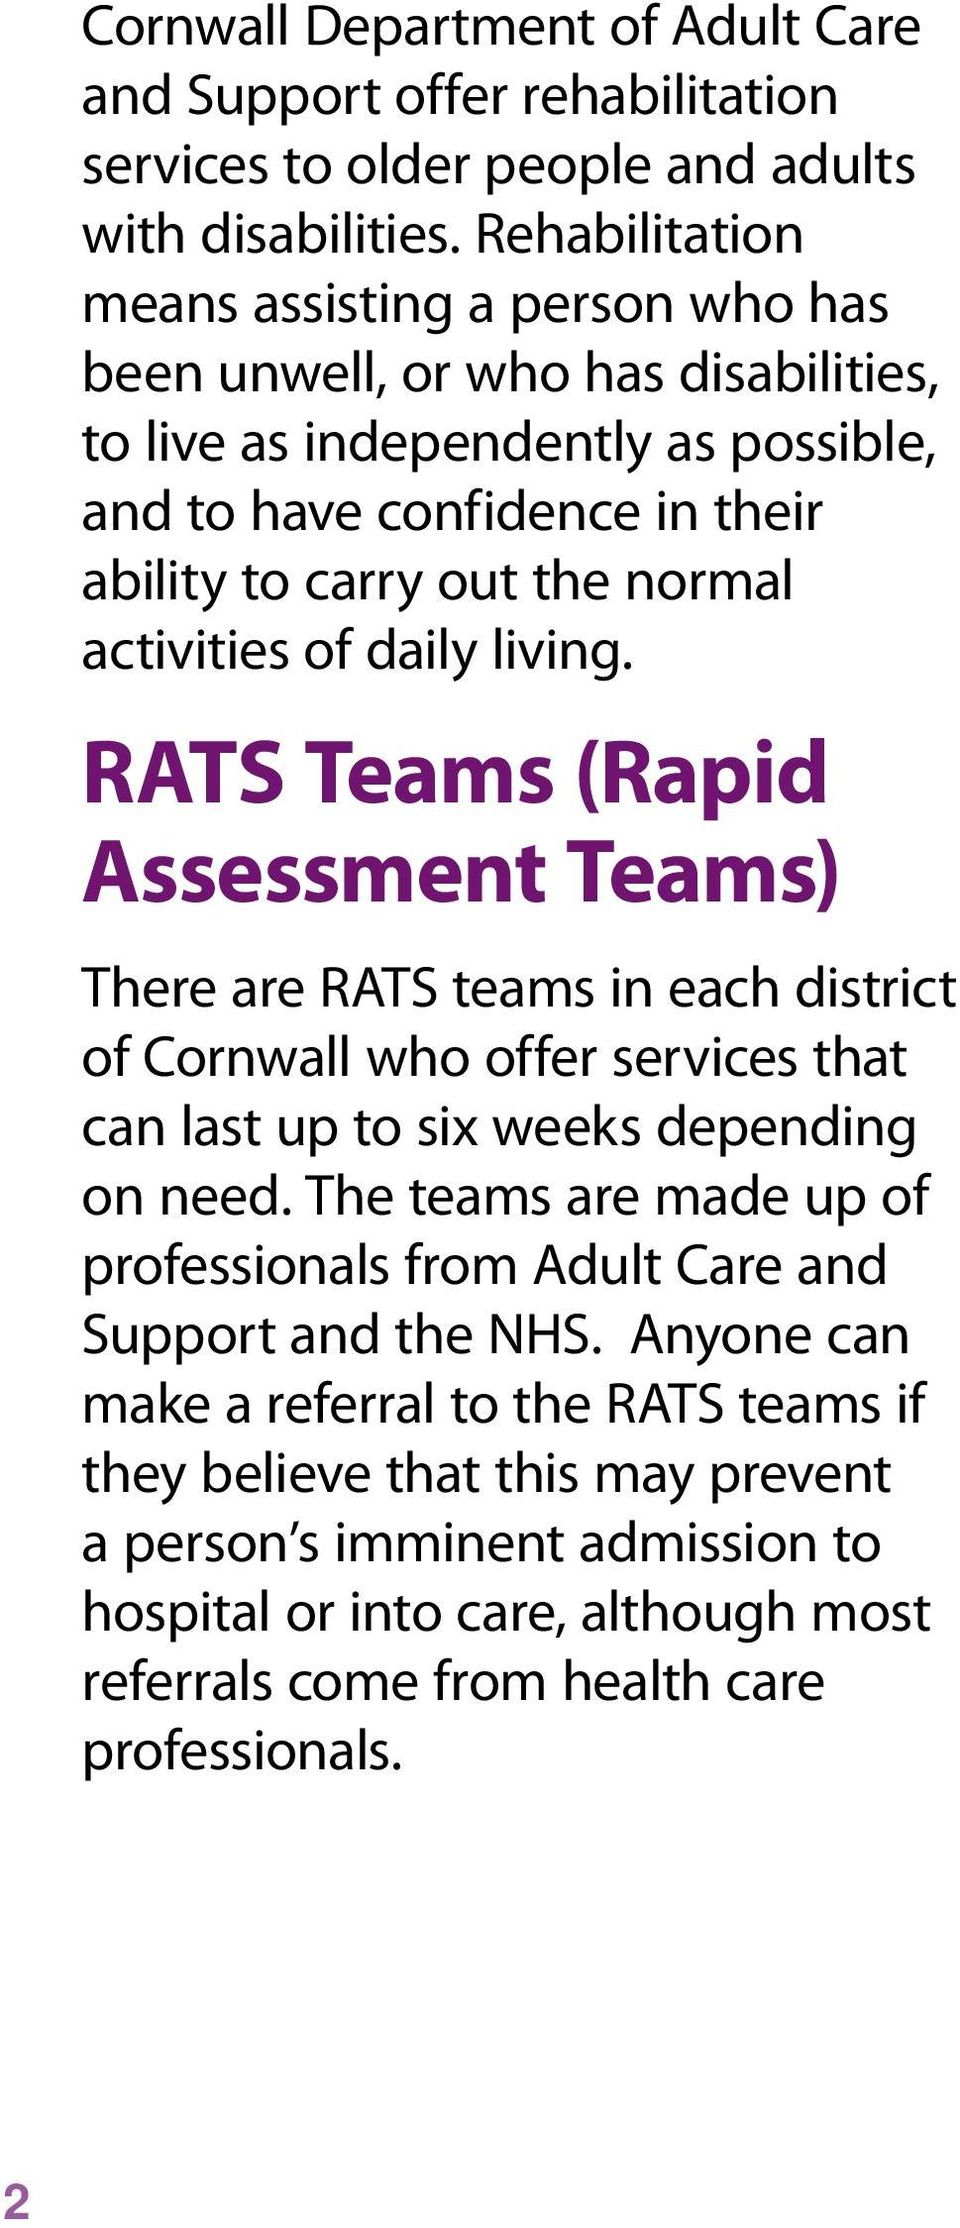 activities of daily living. RATS Teams (Rapid Assessment Teams) There are RATS teams in each district of Cornwall who offer services that can last up to six weeks depending on need.